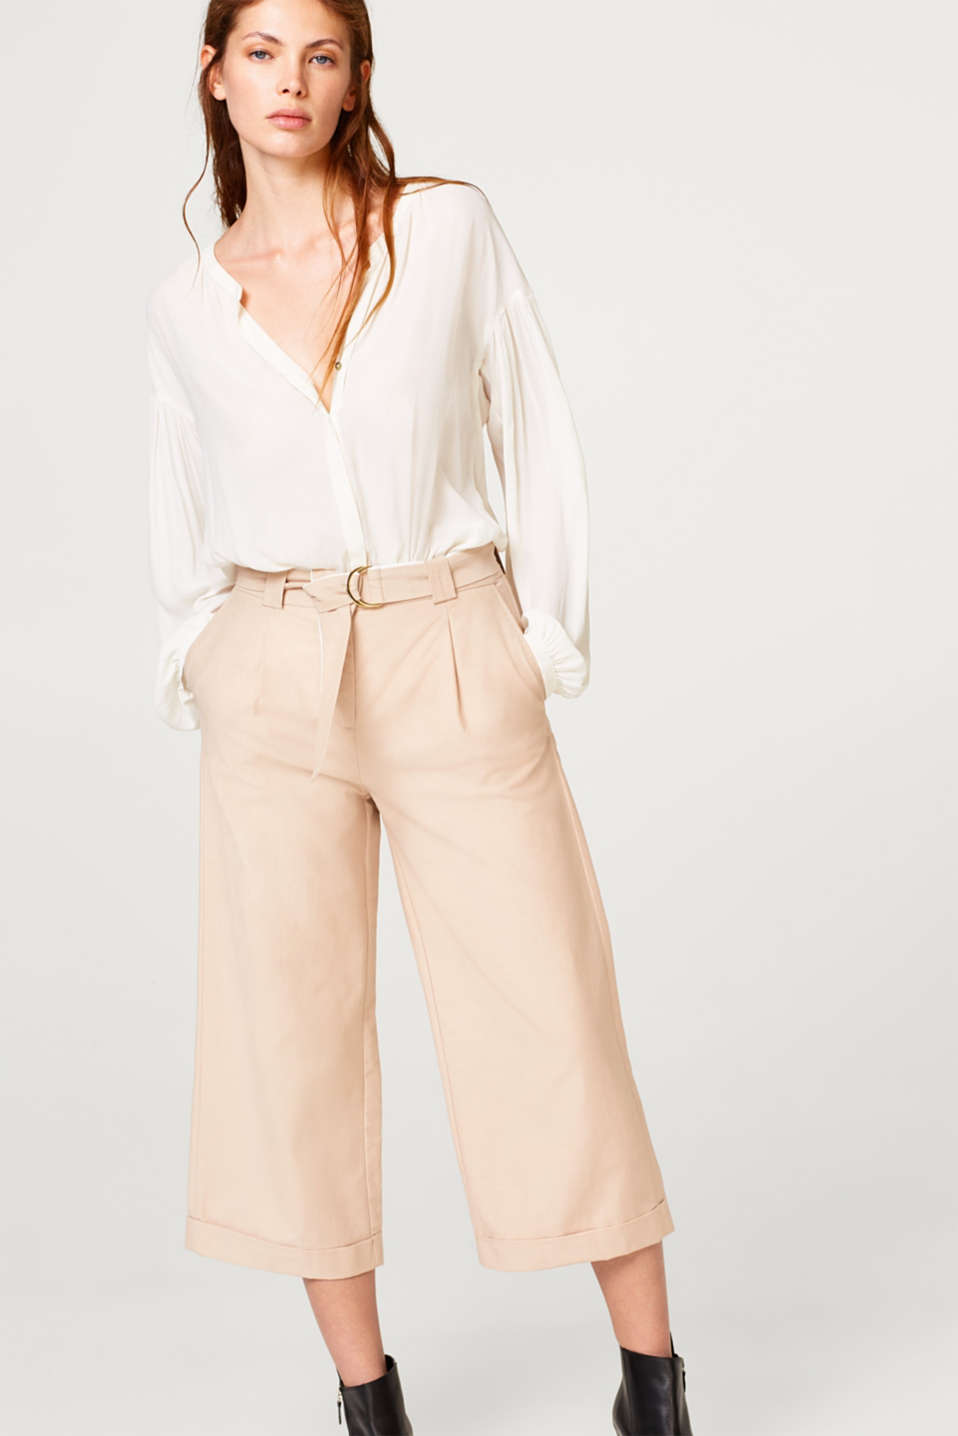 Esprit - Culottes with new details